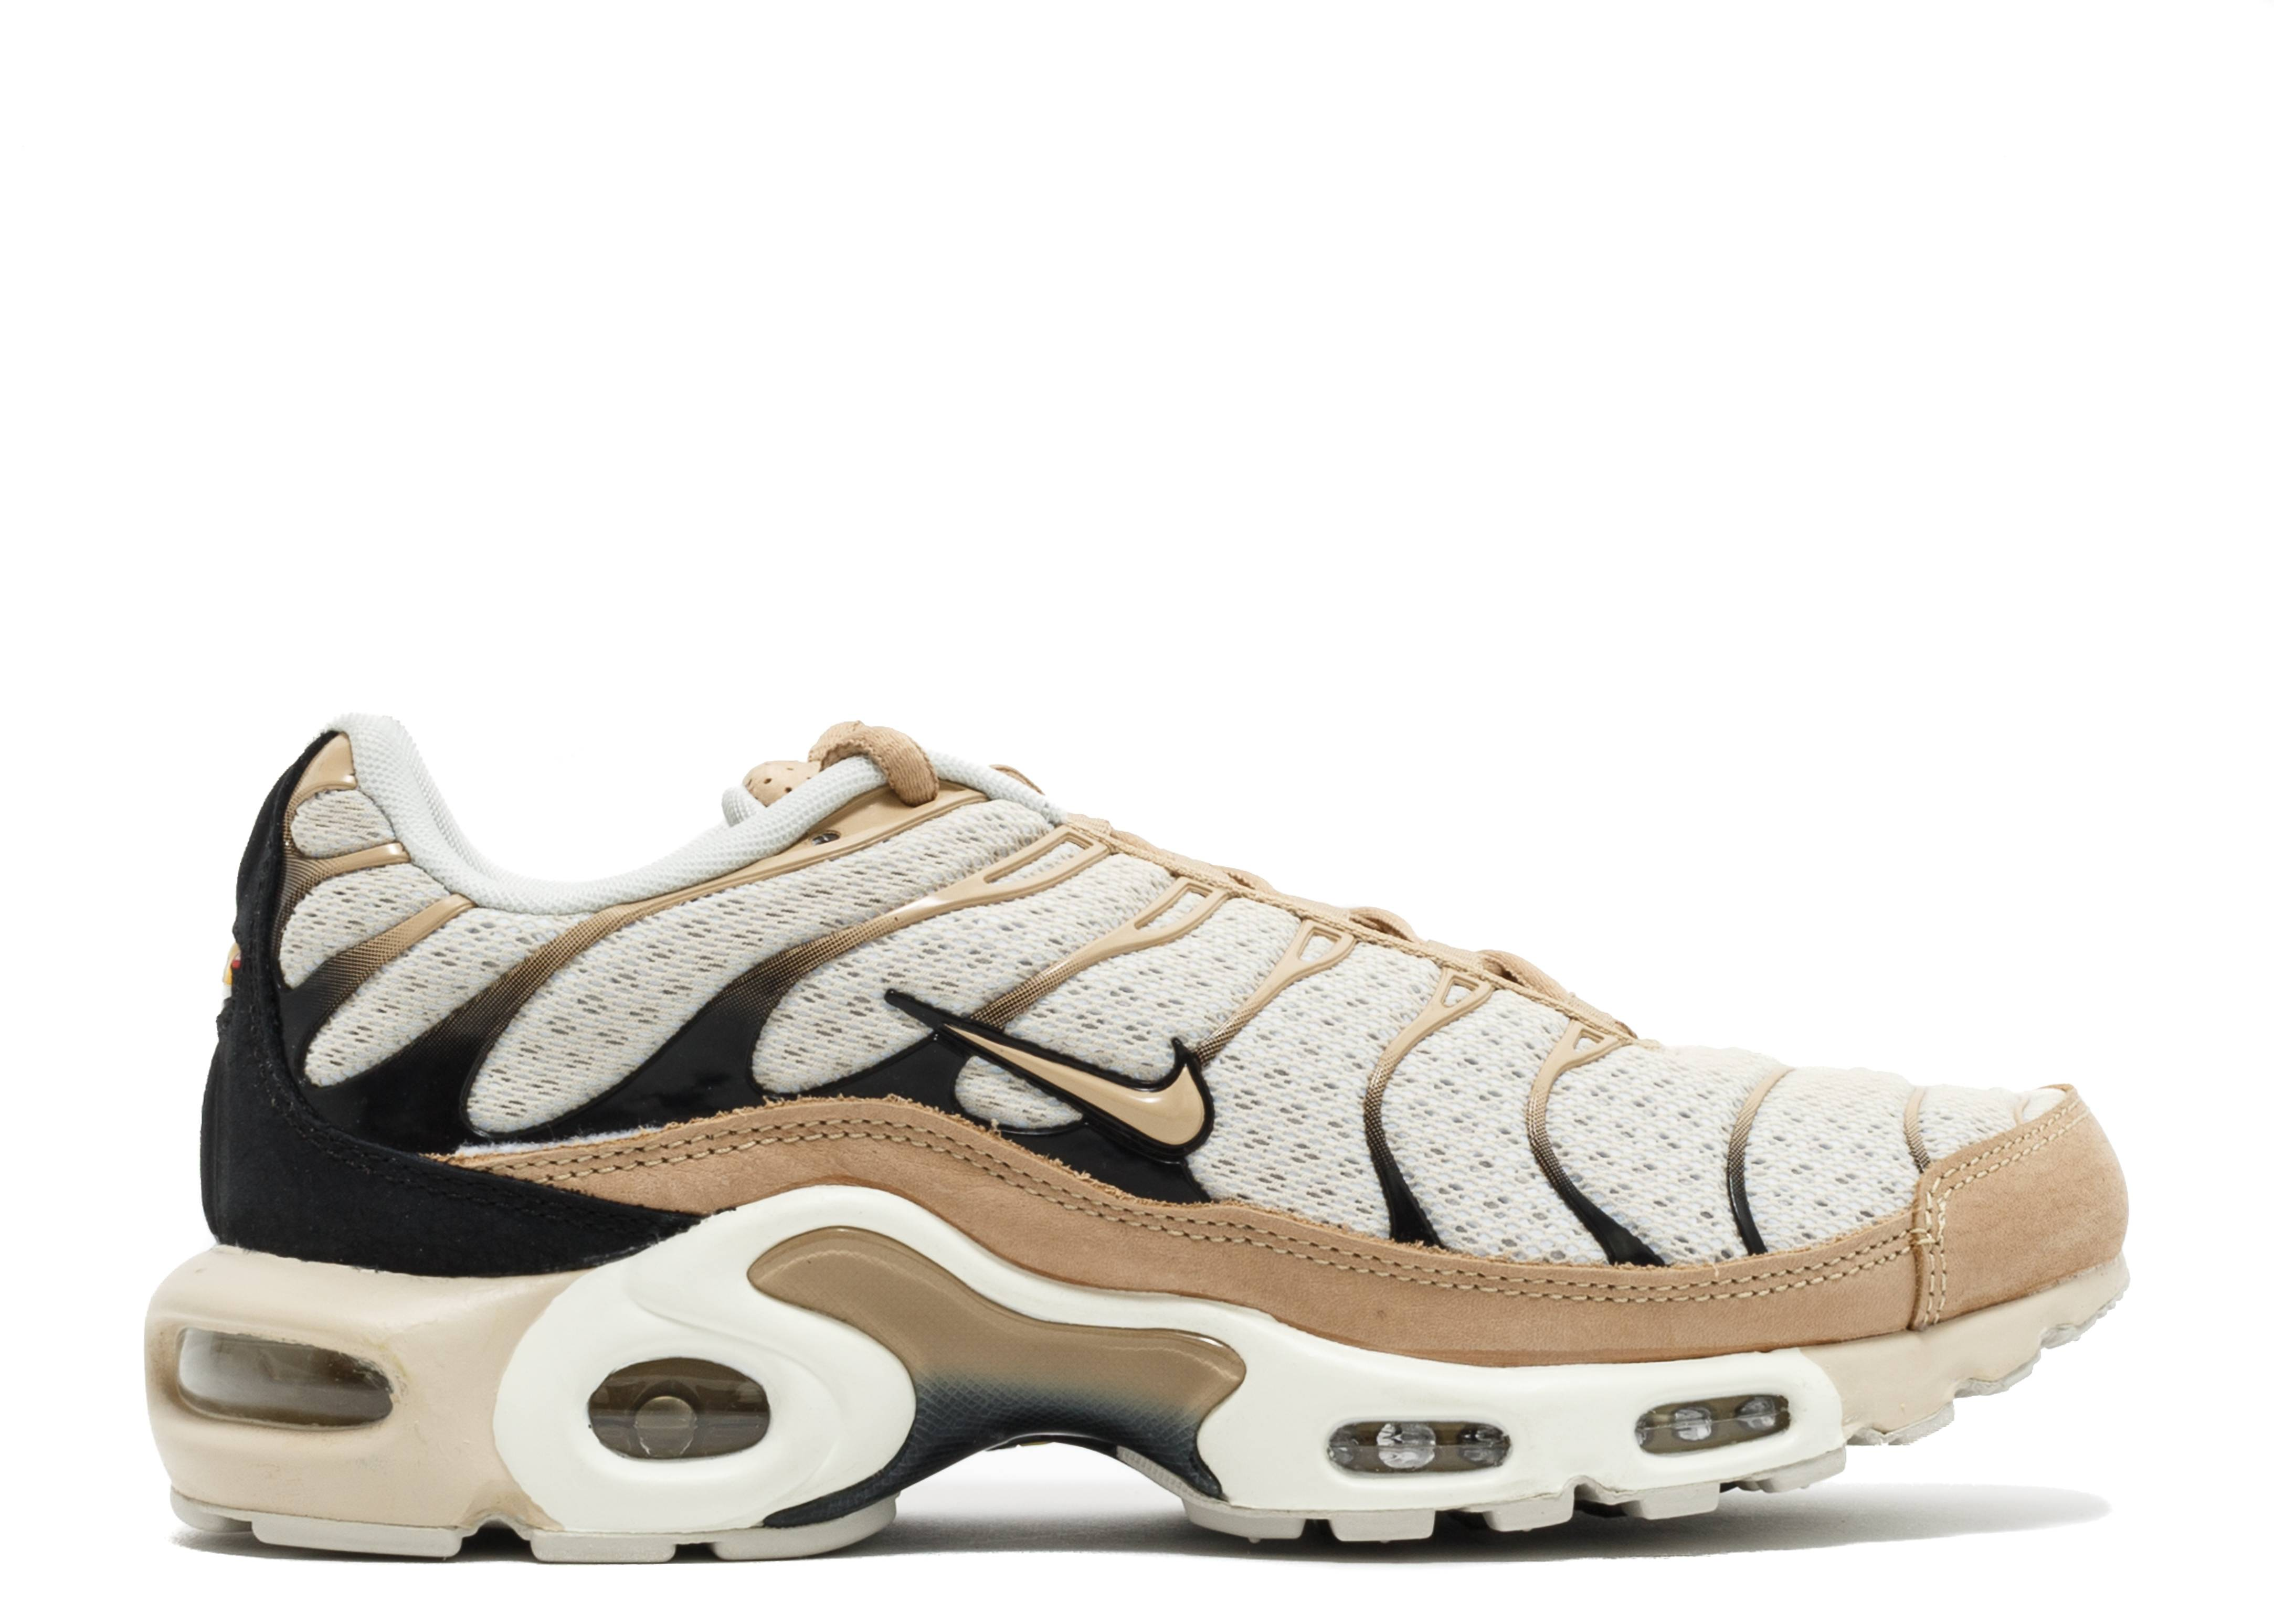 new products 615d2 62bbf Nikelab Air Max Plus